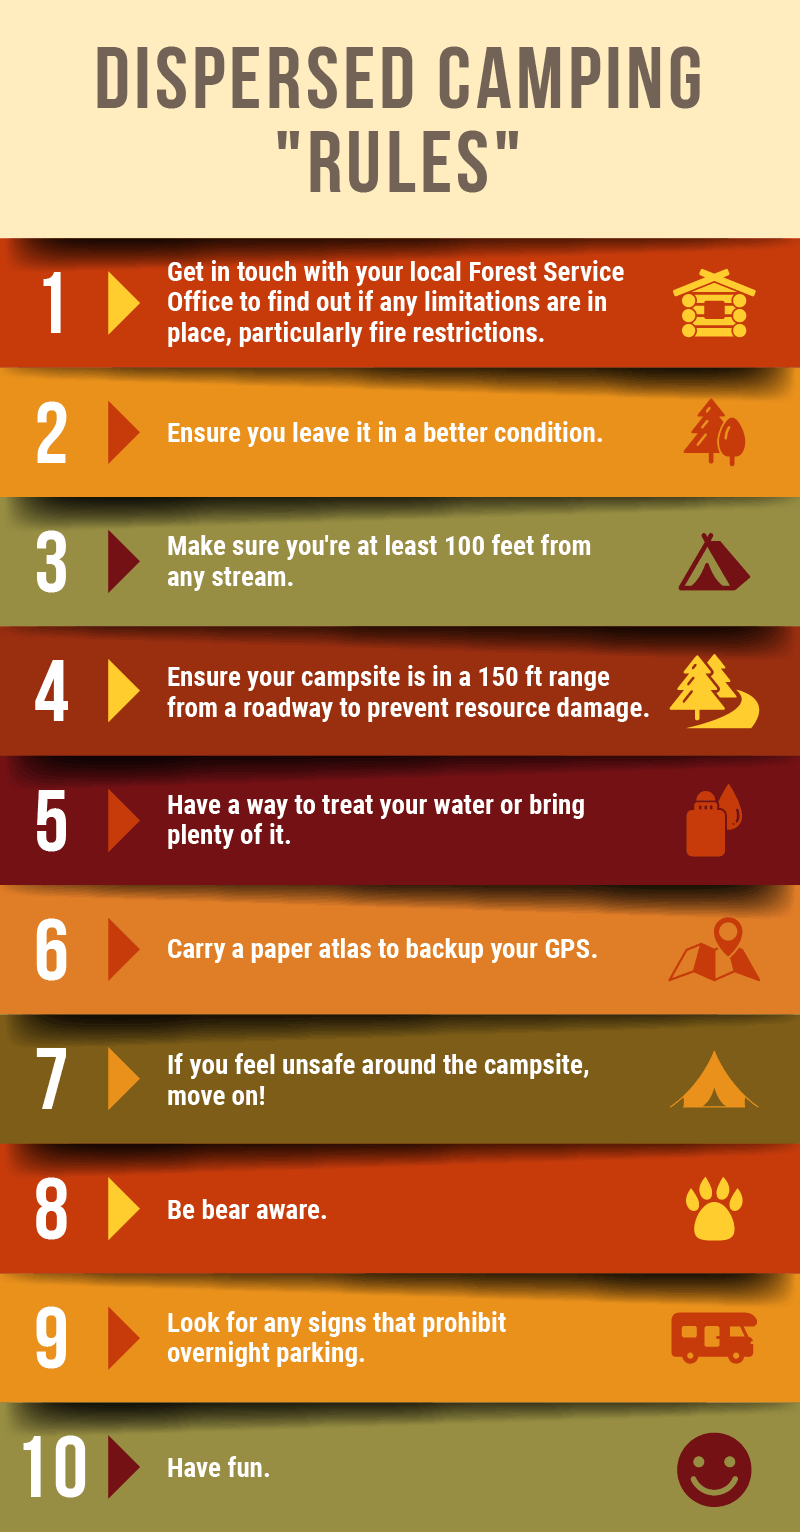 Dispersed camping infographic